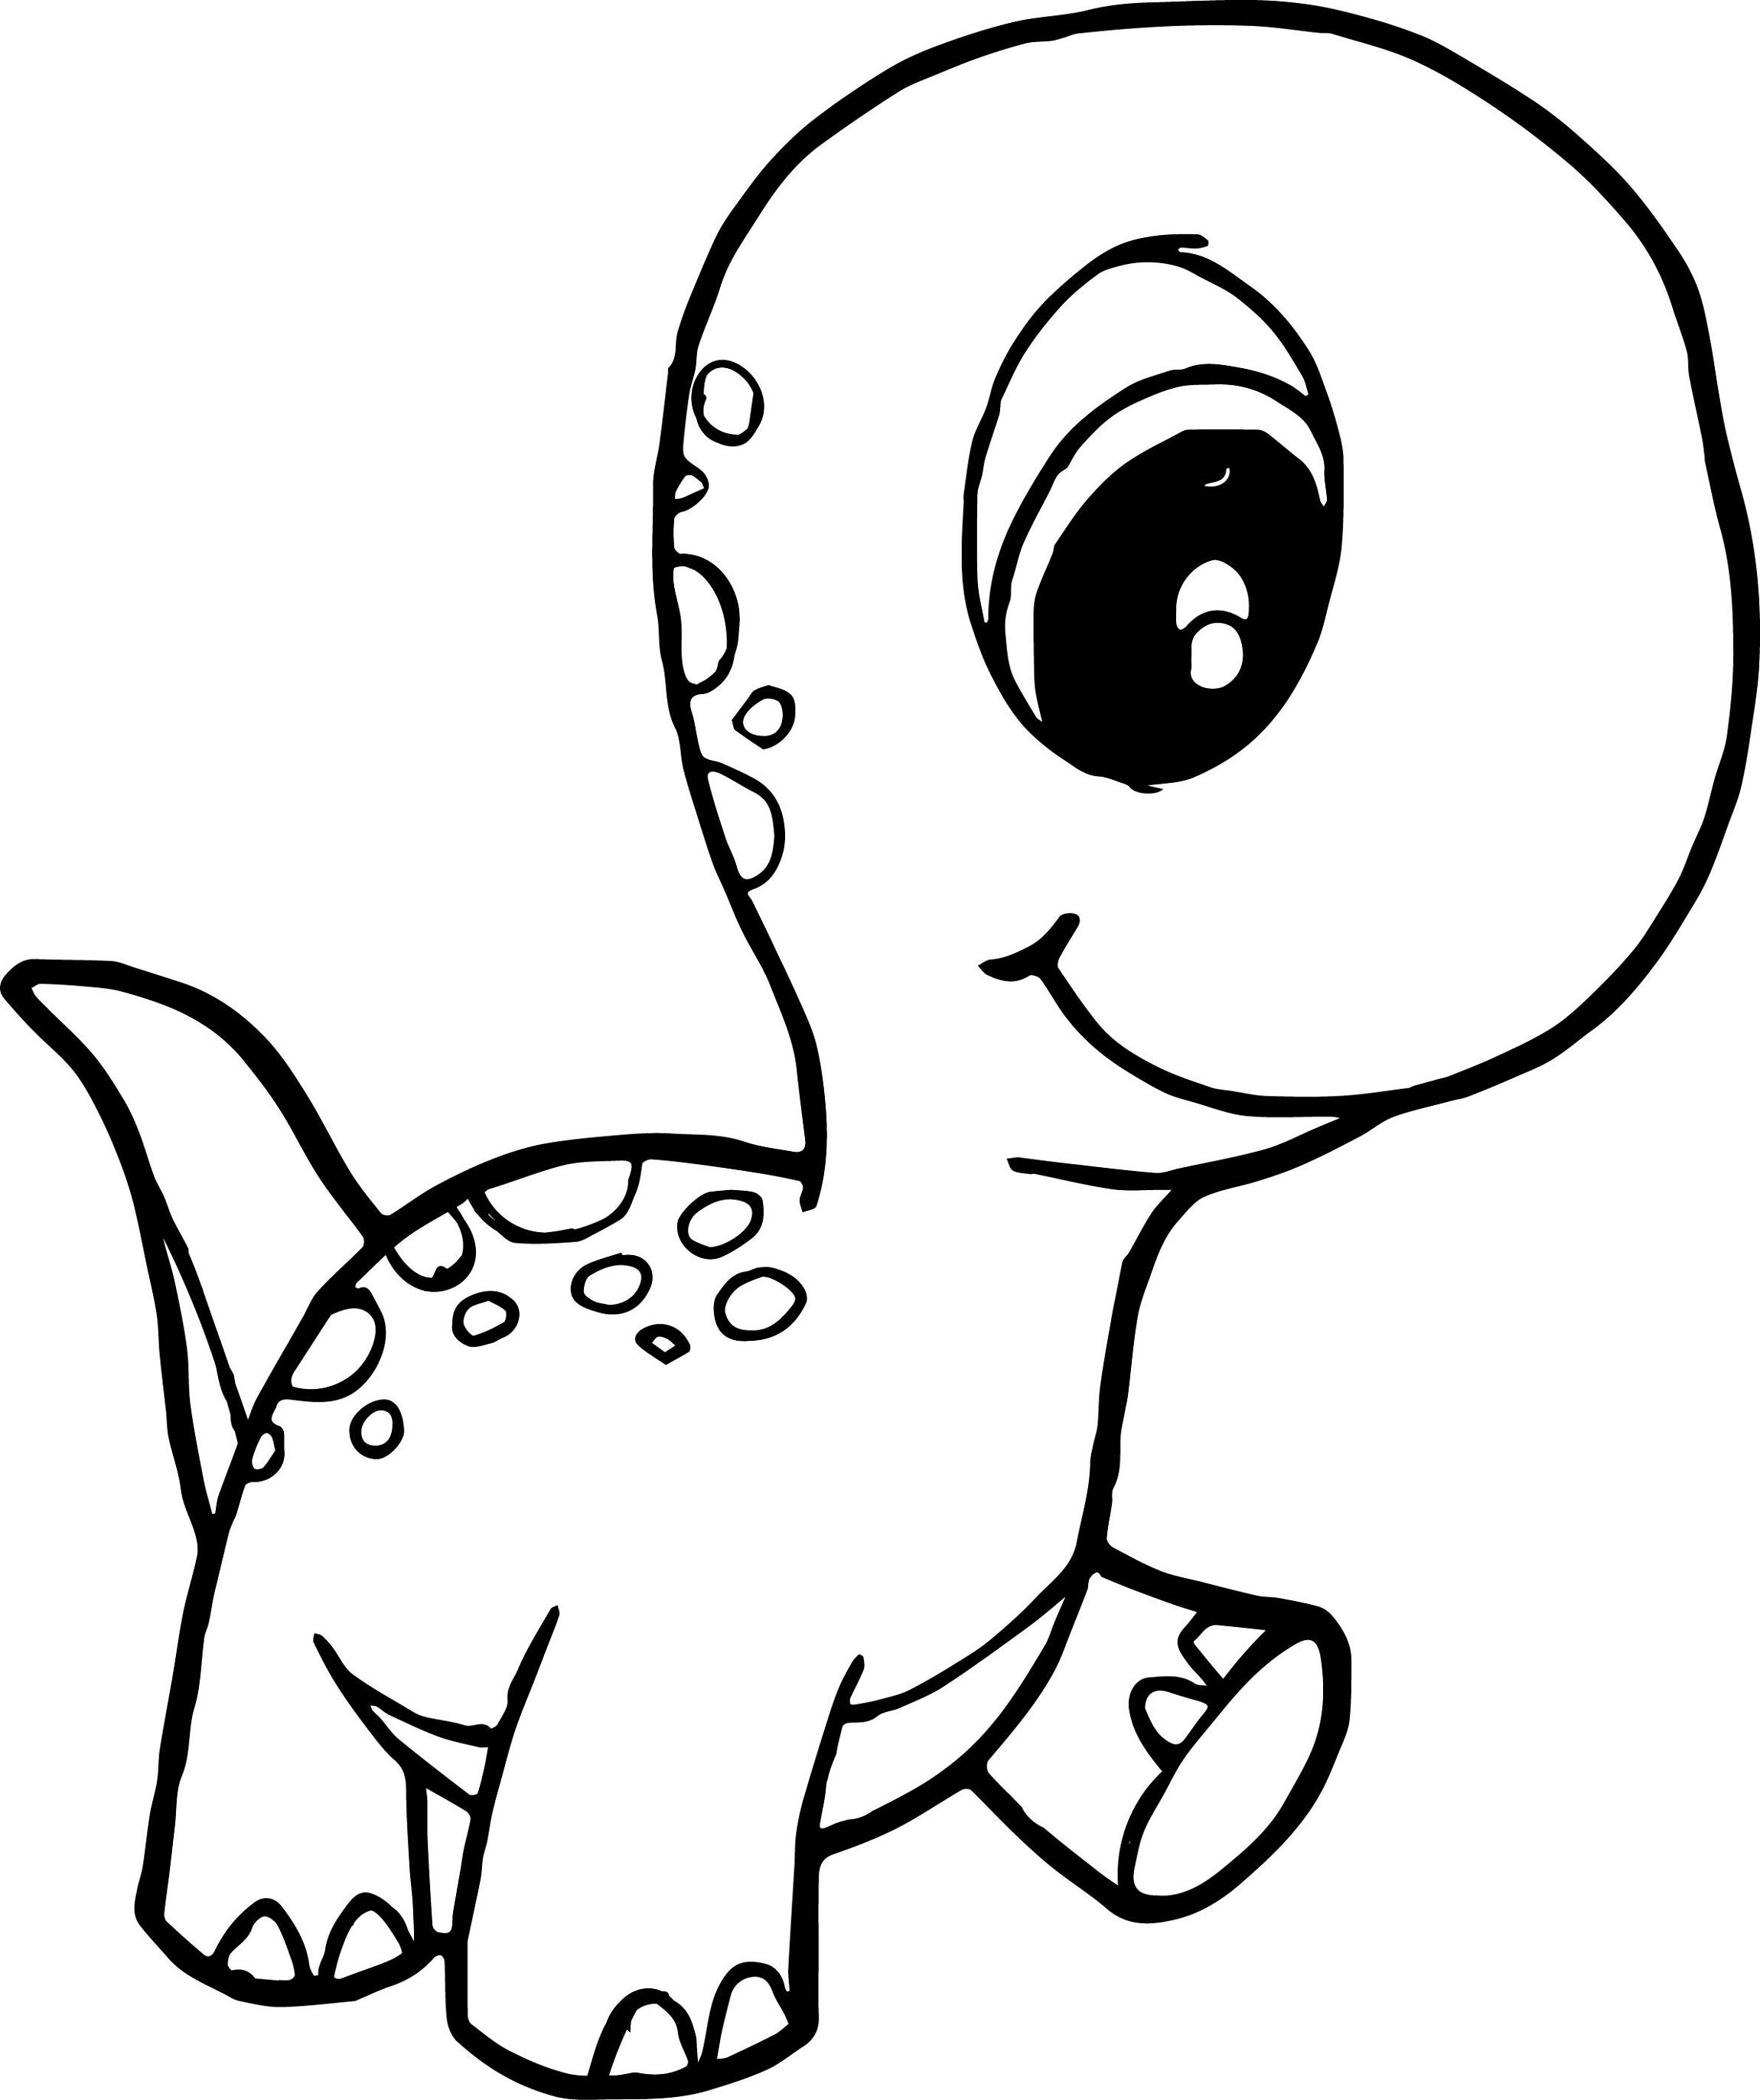 dinosaurs color pages dinosaurs coloring pages collection free coloring sheets color dinosaurs pages